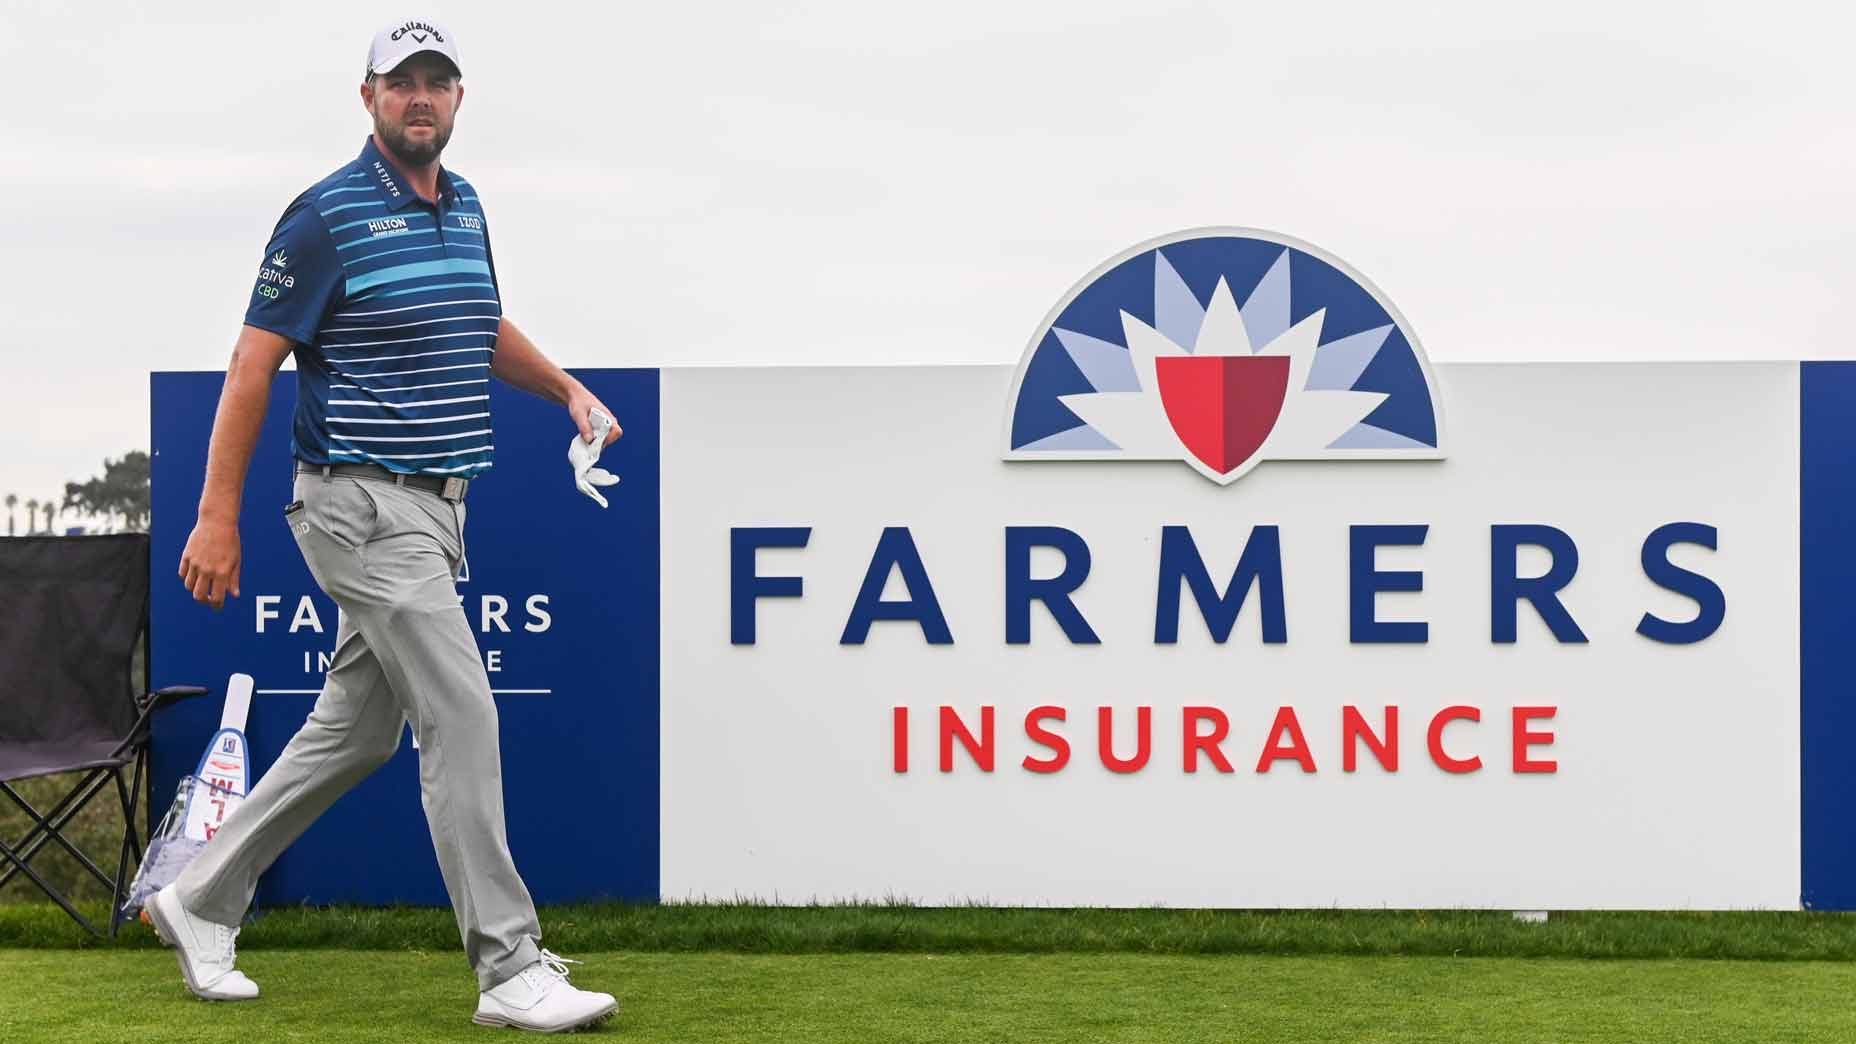 Marc Leishman at Farmers Insurance Open